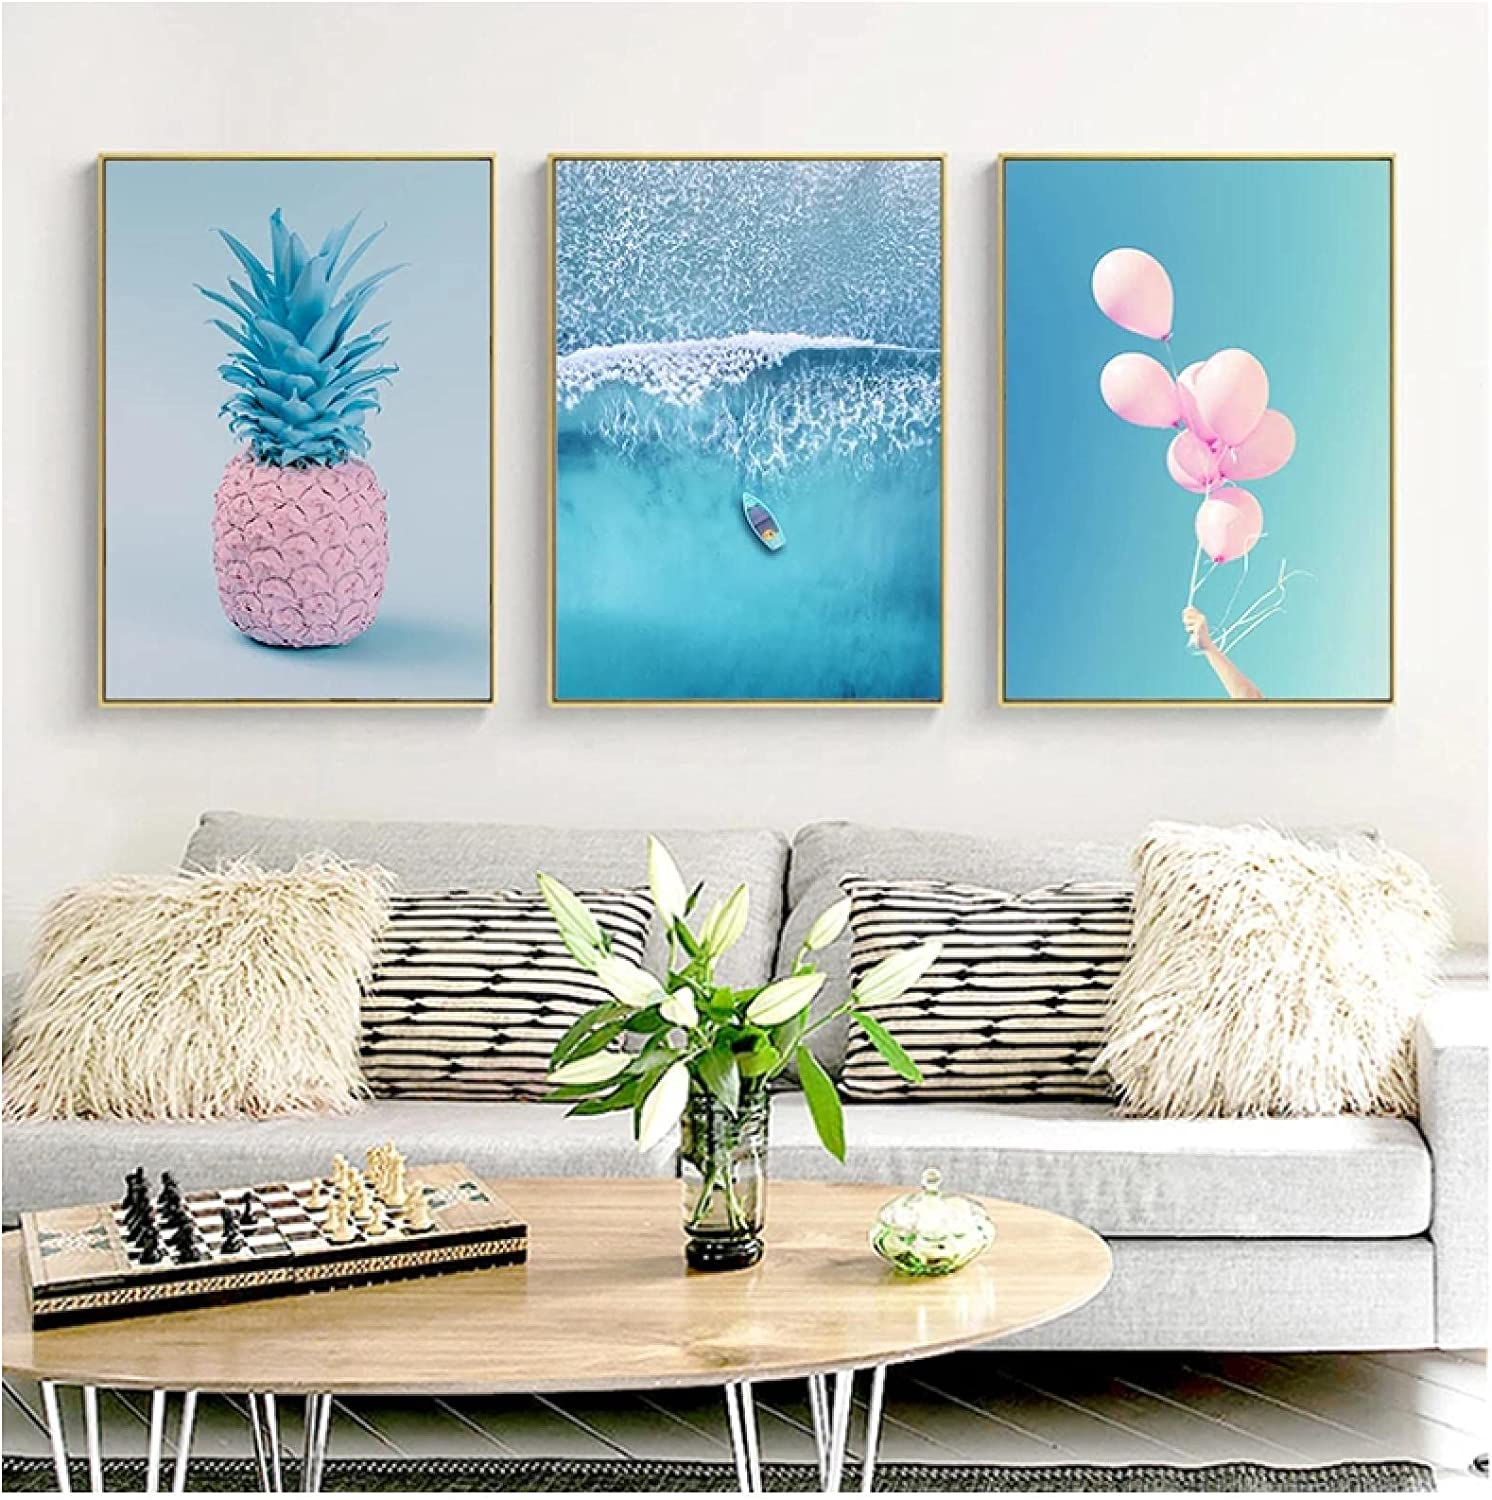 Free shipping Wall Art Painting Save money Blue Ocean Pineapple Landscape Balloon Poster